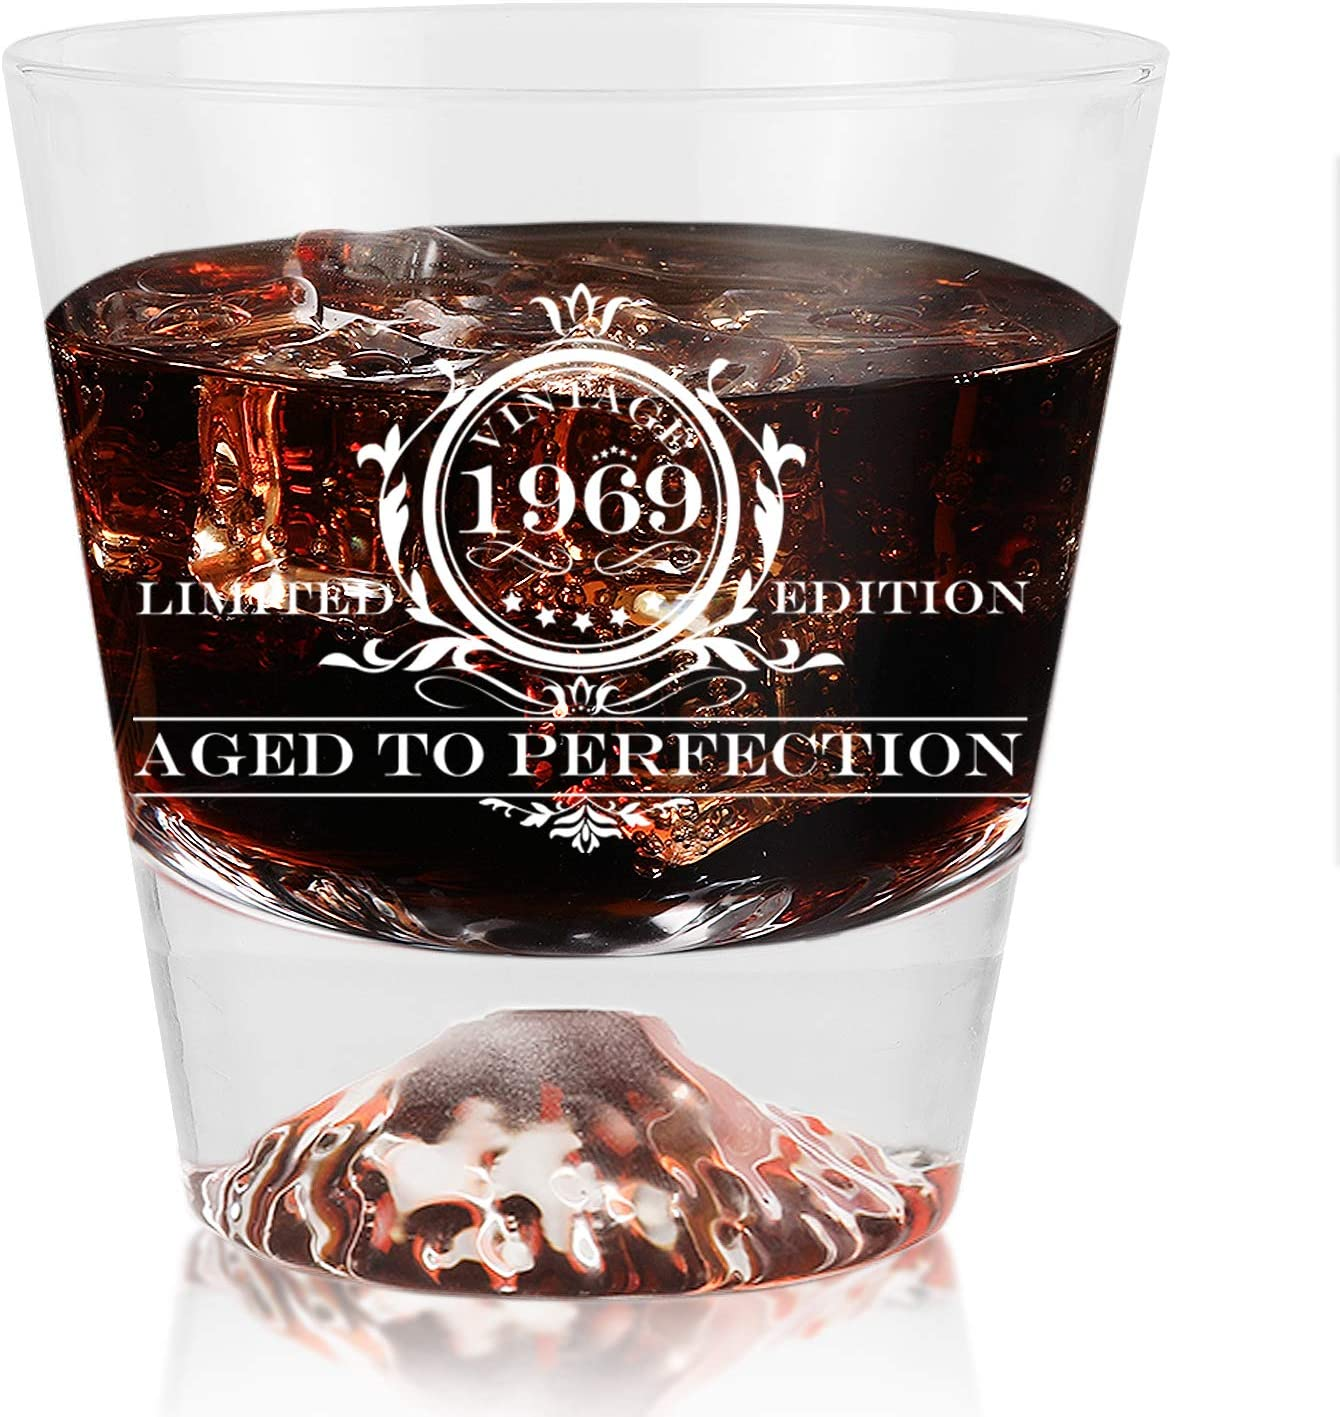 1969 vintage wine glass 50th Birthday Gifts for Men and Women Kithumi Whiskey Glass-Vintage Funny Anniversary Gift Ideas for Mom, Dad, Husband, Wife-Party Decorations-11 oz